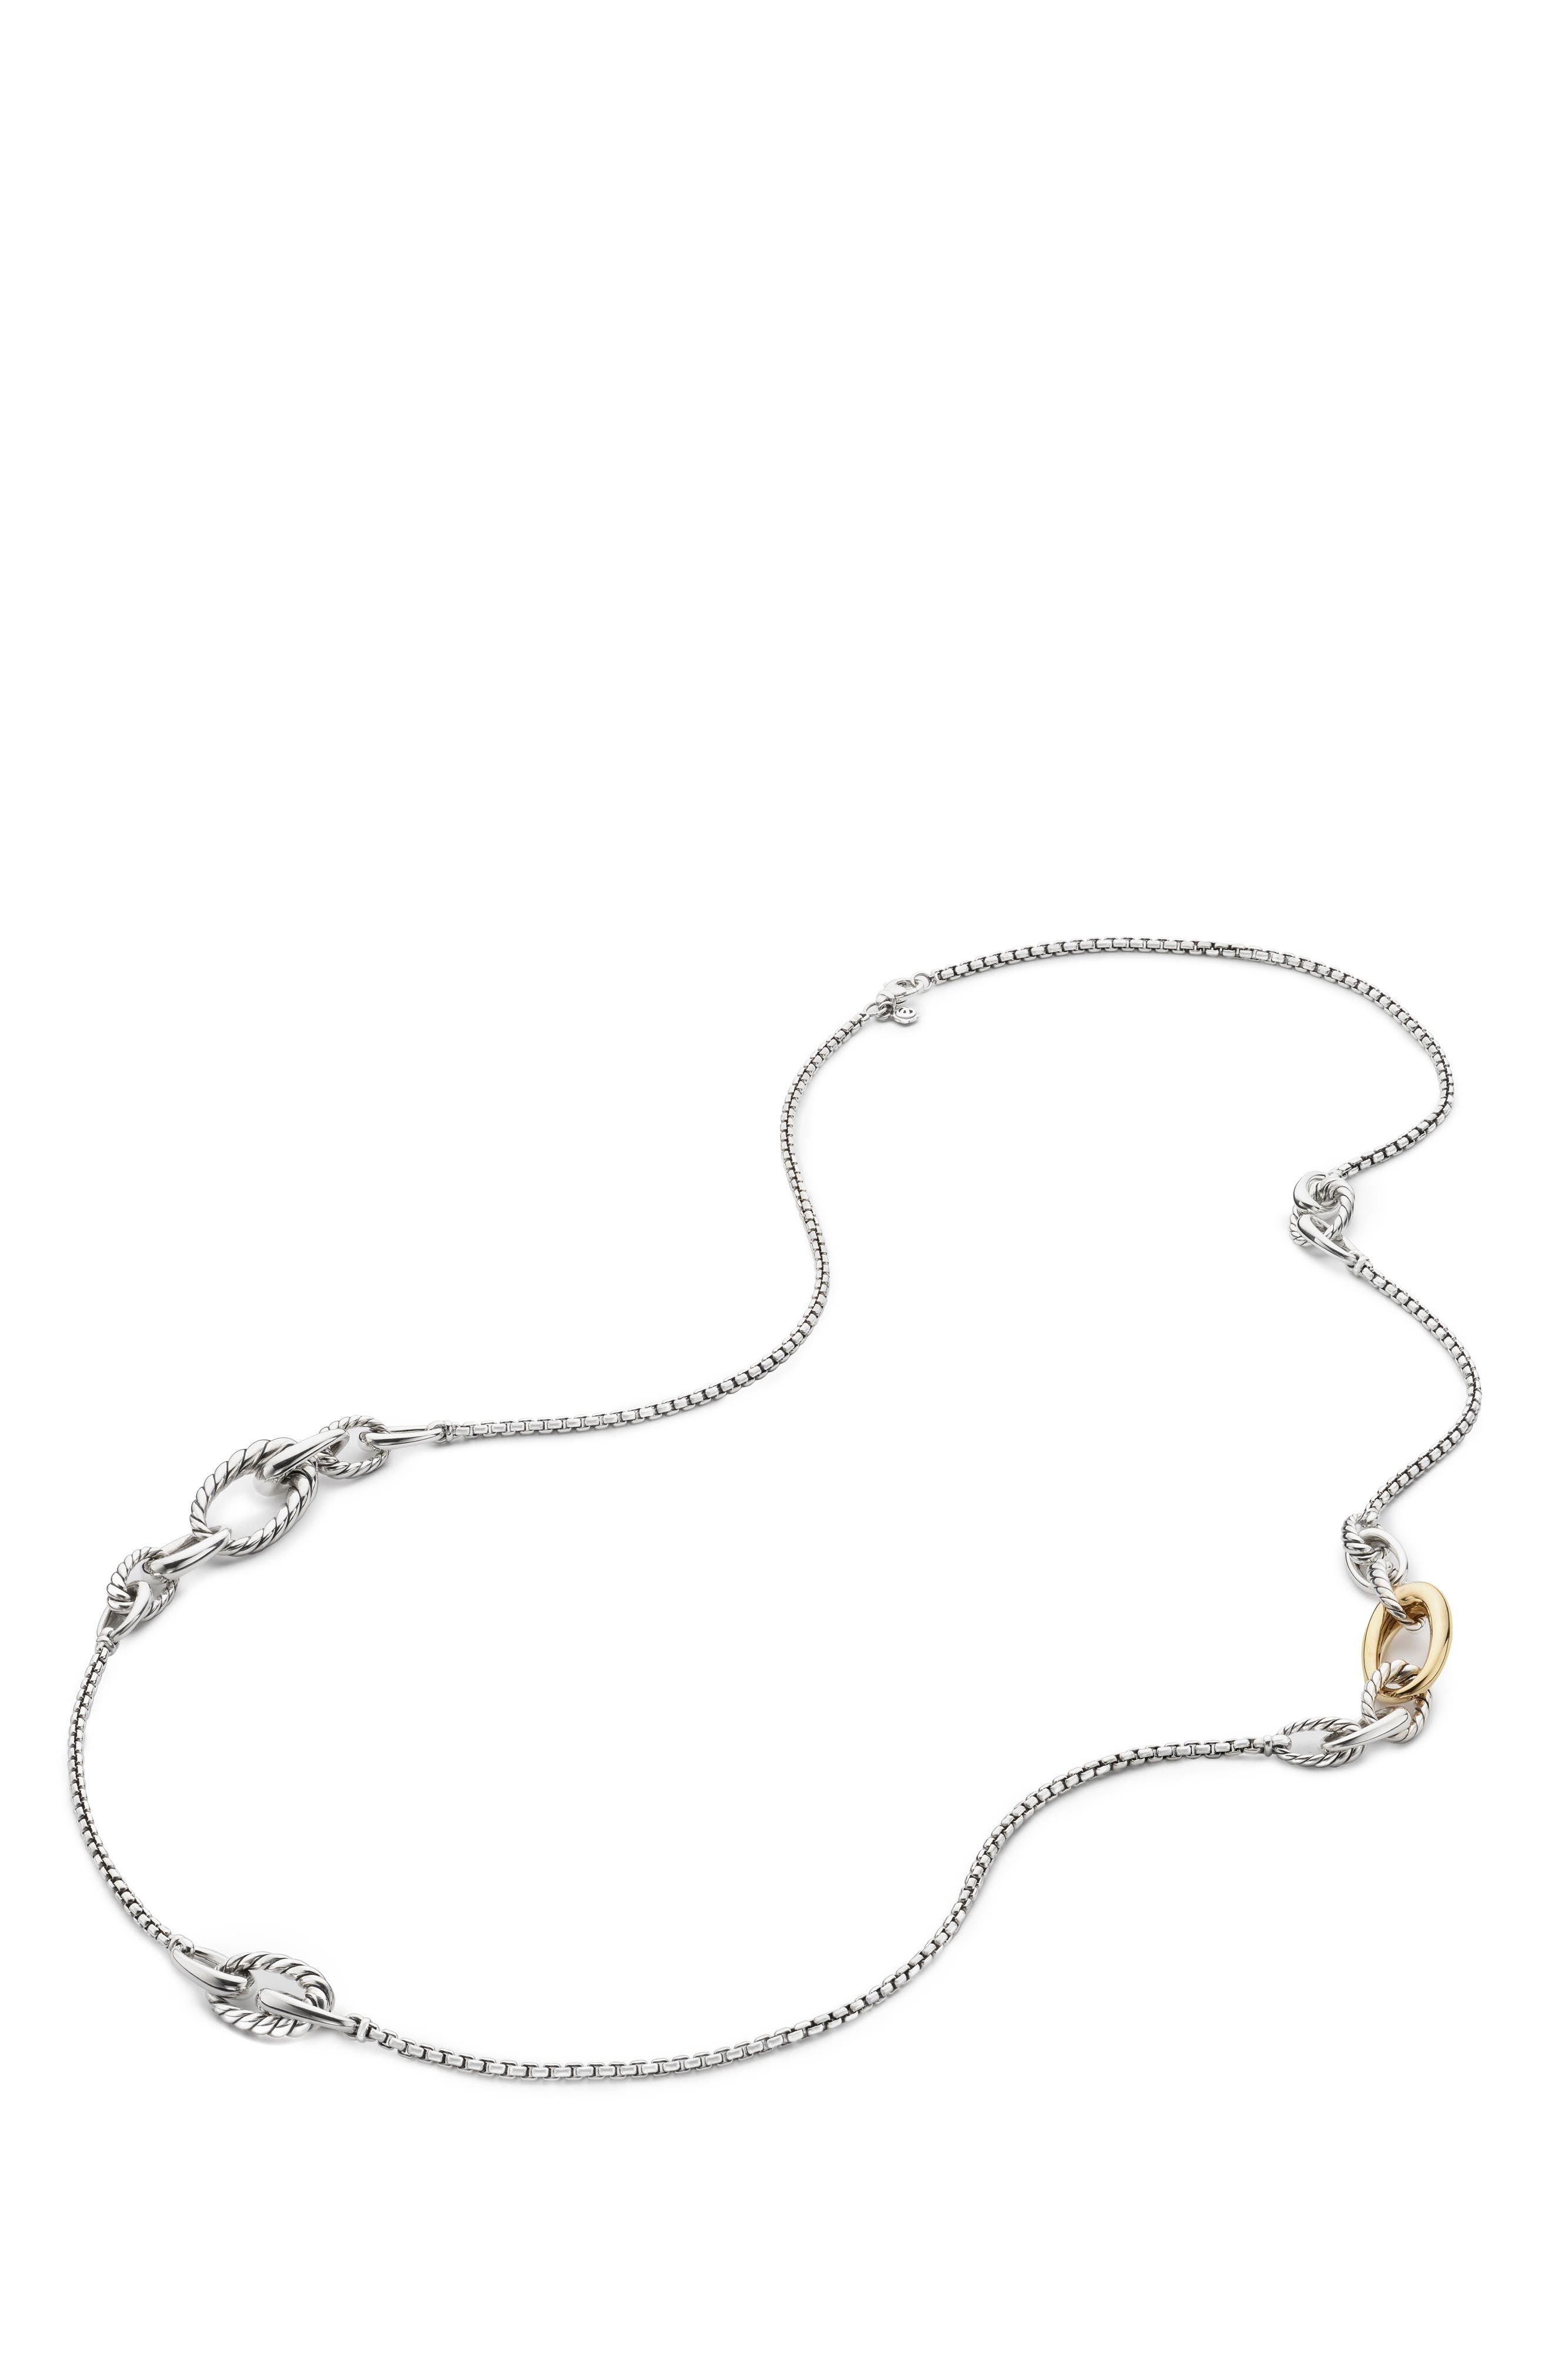 Pure Form Graduated Chain Station Necklace,                             Main thumbnail 1, color,                             GOLD/ SILVER